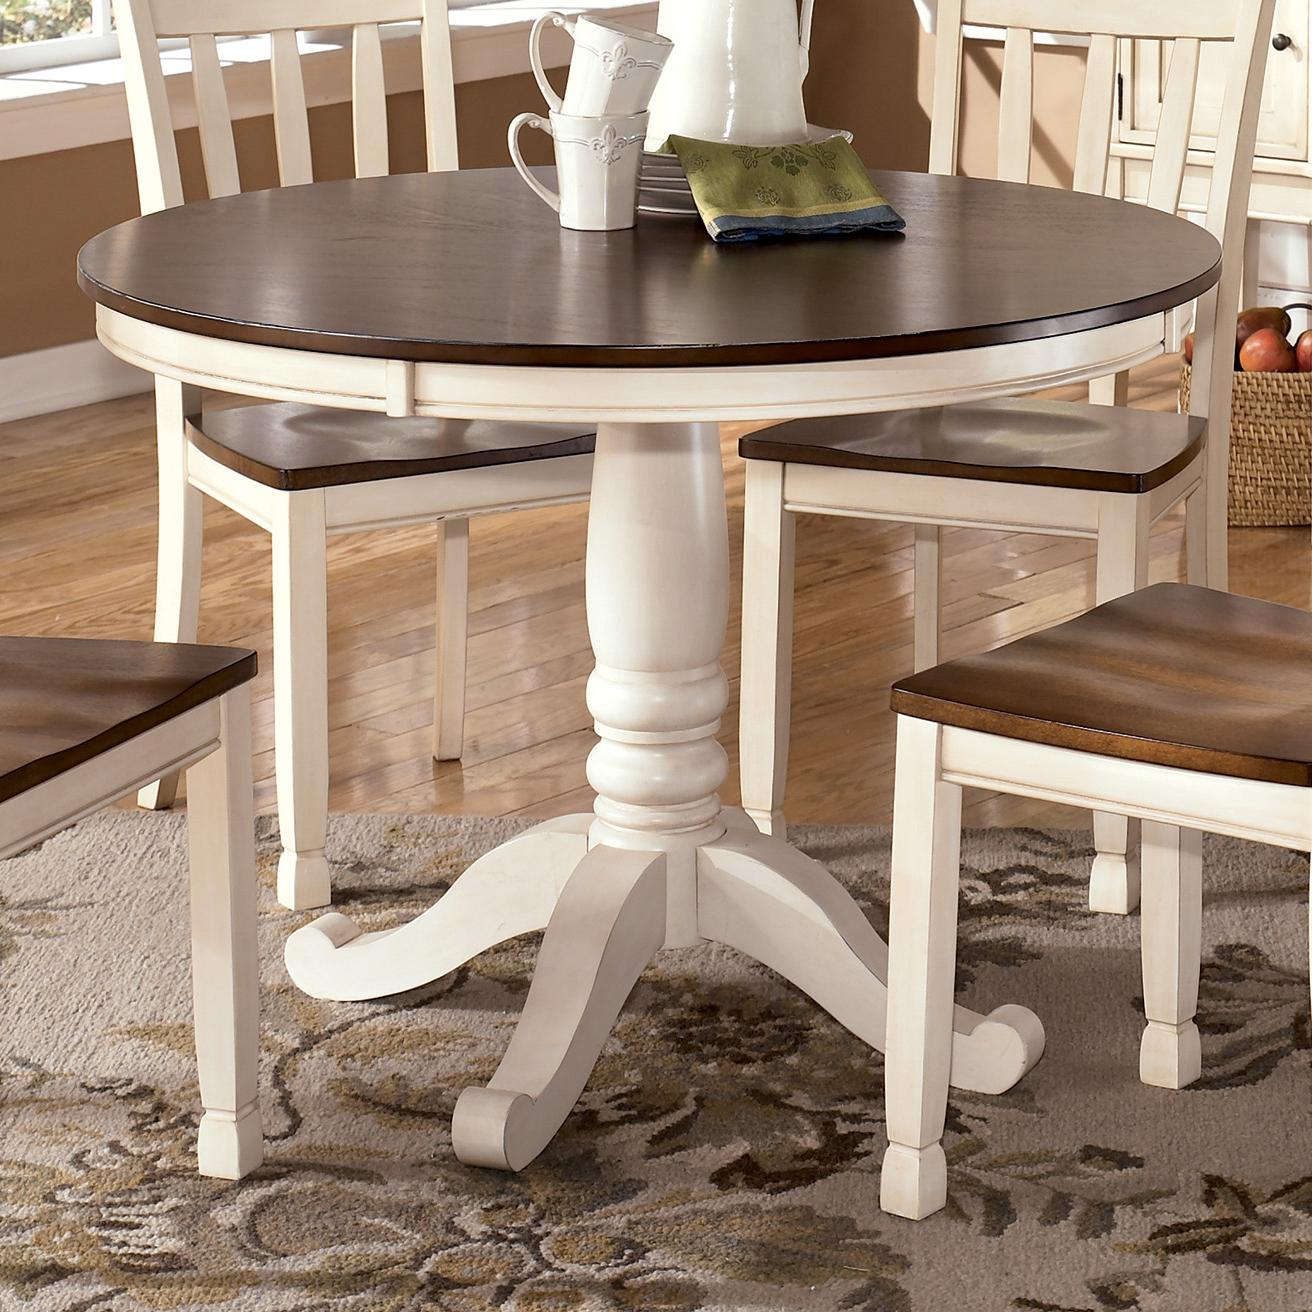 Whitesburg Round Table by Signature Design by Ashley at Furniture Fair - North Carolina